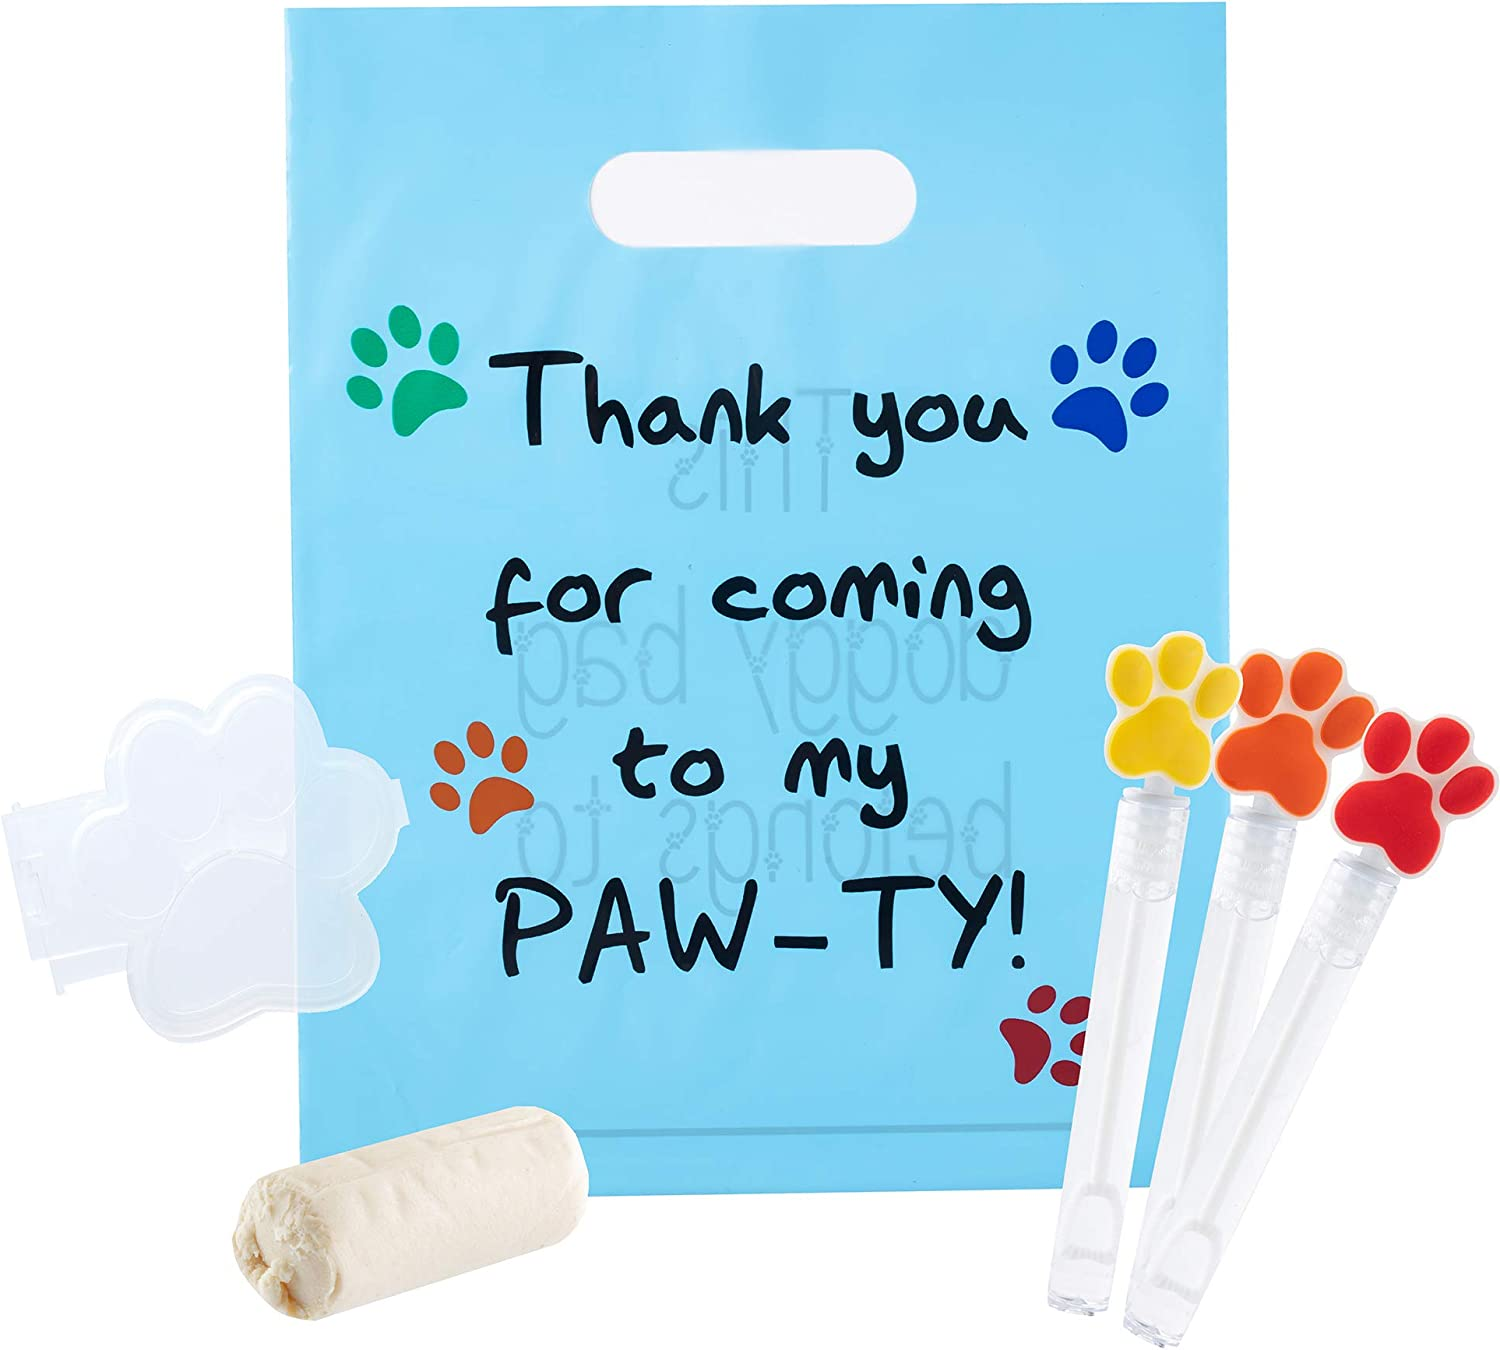 12 Dog Puppy Theme Candy Party Favor Bags  5x7  Red Girl Boy Kids BIRTHDAY  Thanks for Coming to Paw-ty  PERSONALIZED  3 Day Ship